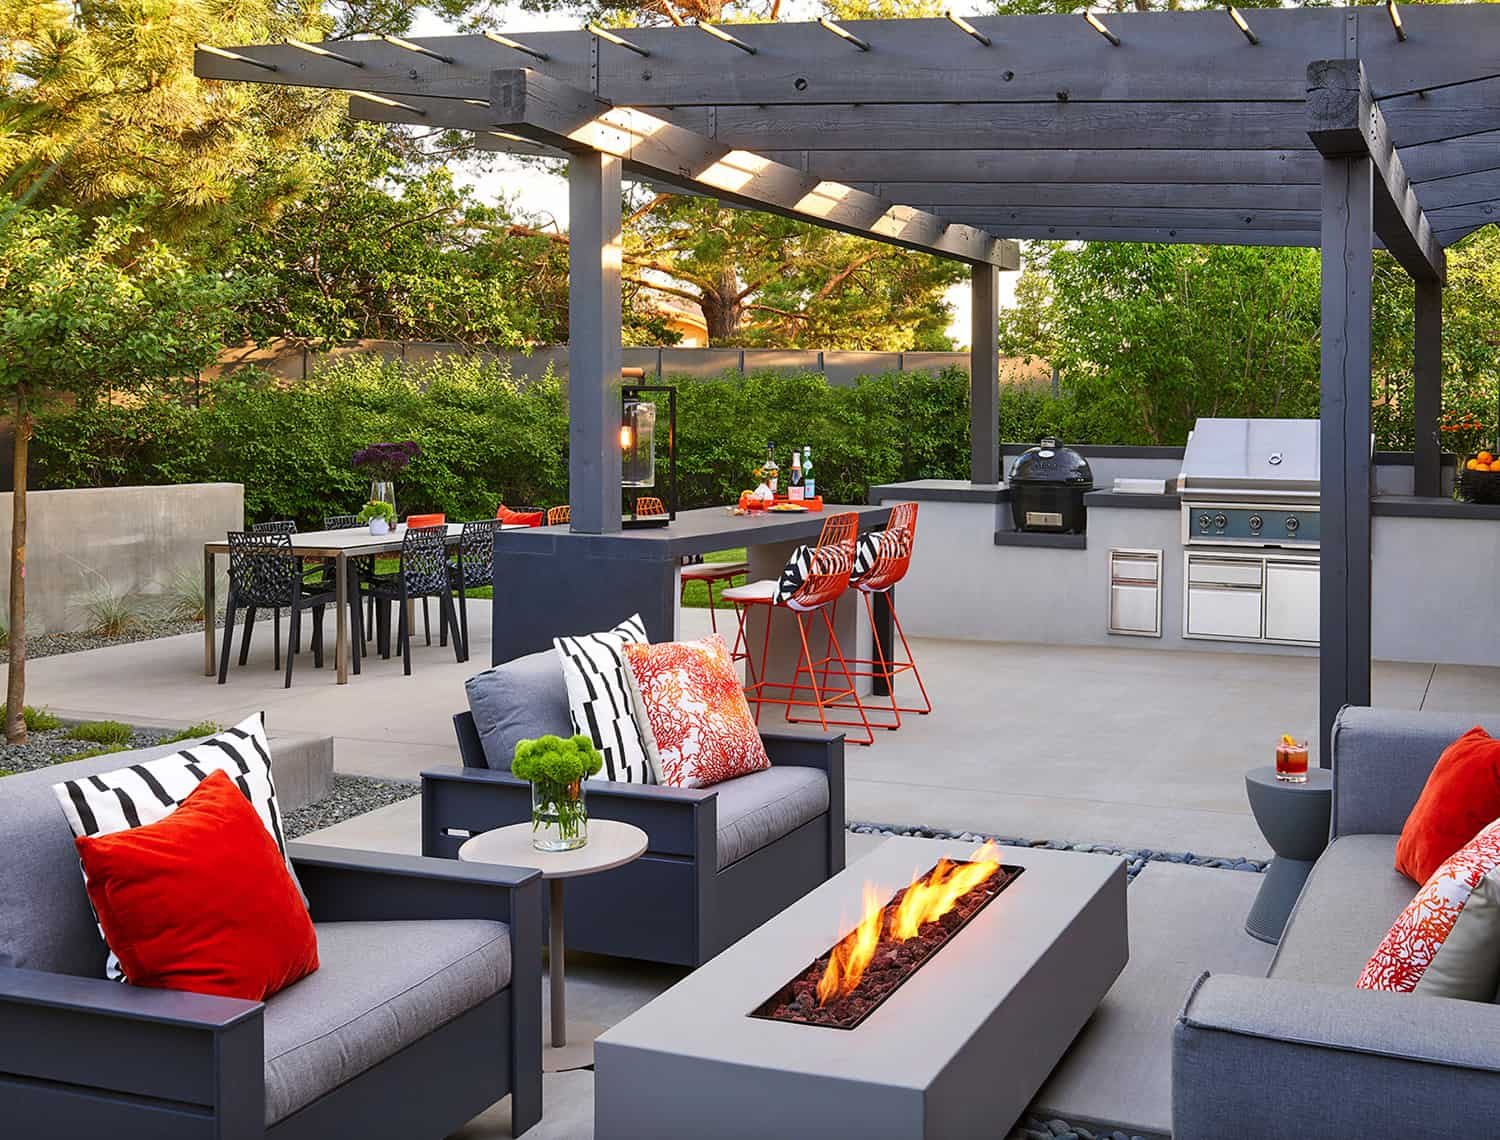 midcentury-pergola-outdoor-bar-kitchen-with-a-fireplace